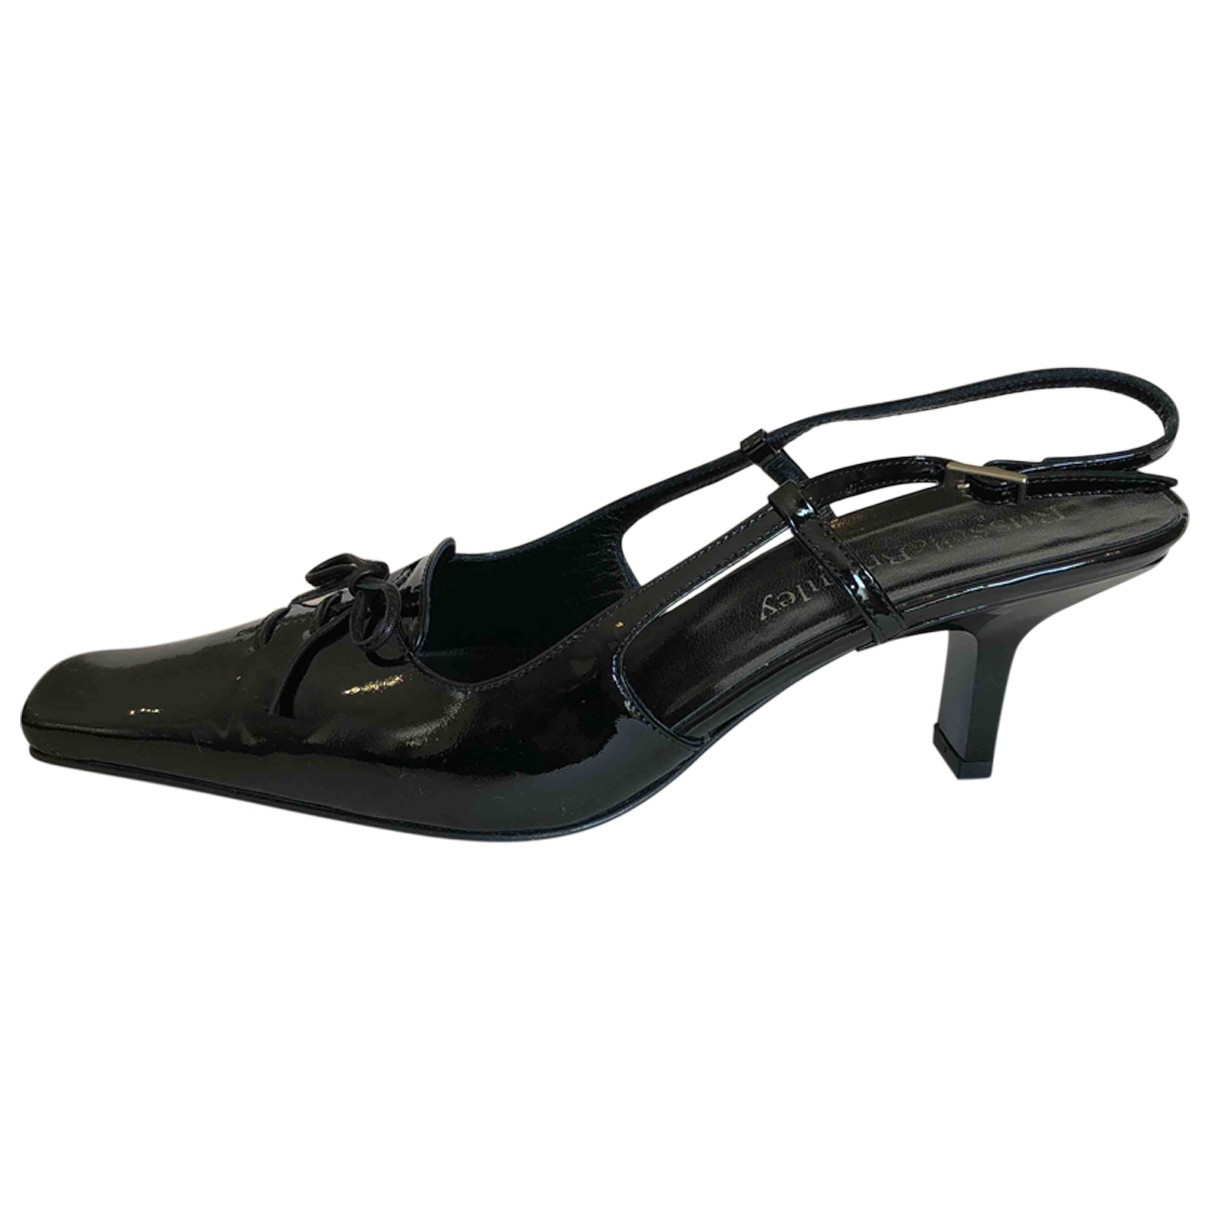 Russell & Bromley N Black Patent leather Sandals for Women 38 EU